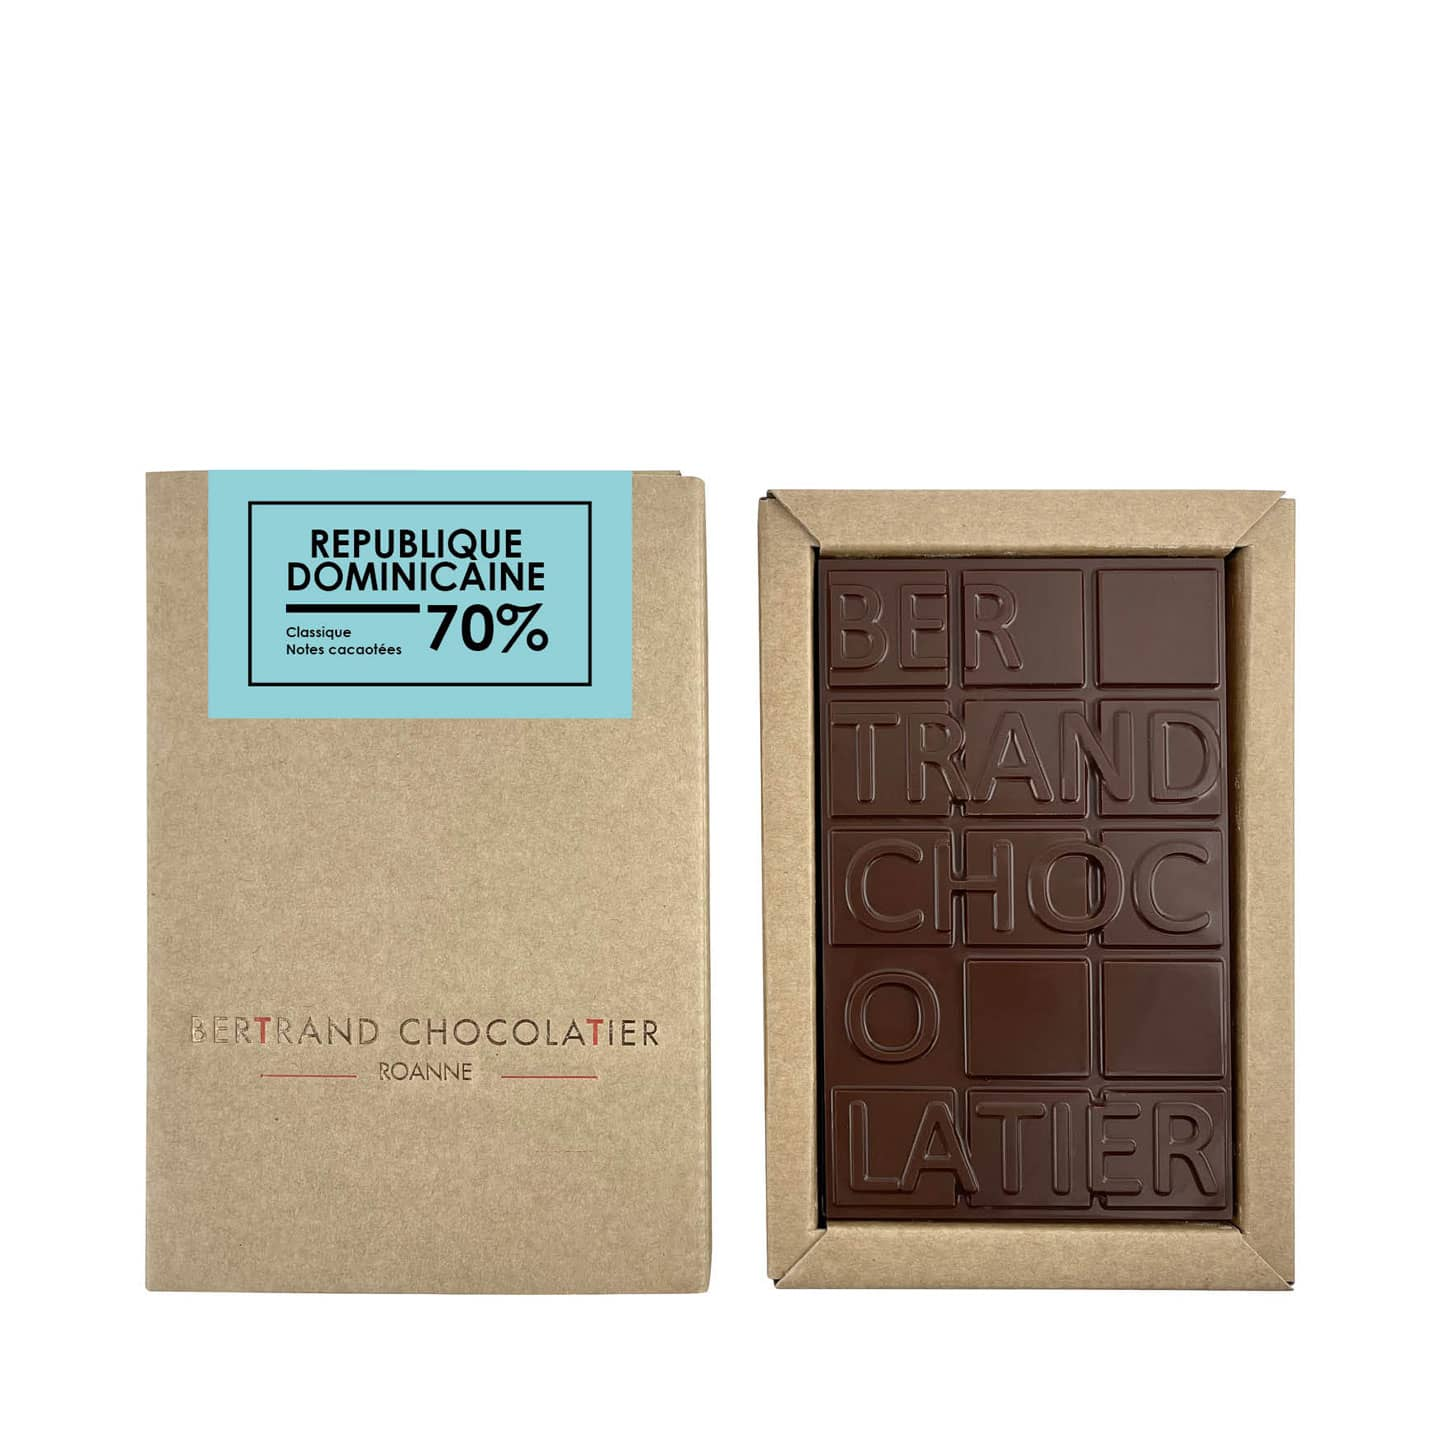 Tablette chocolat Noir 70% origine République Dominicaine 90g